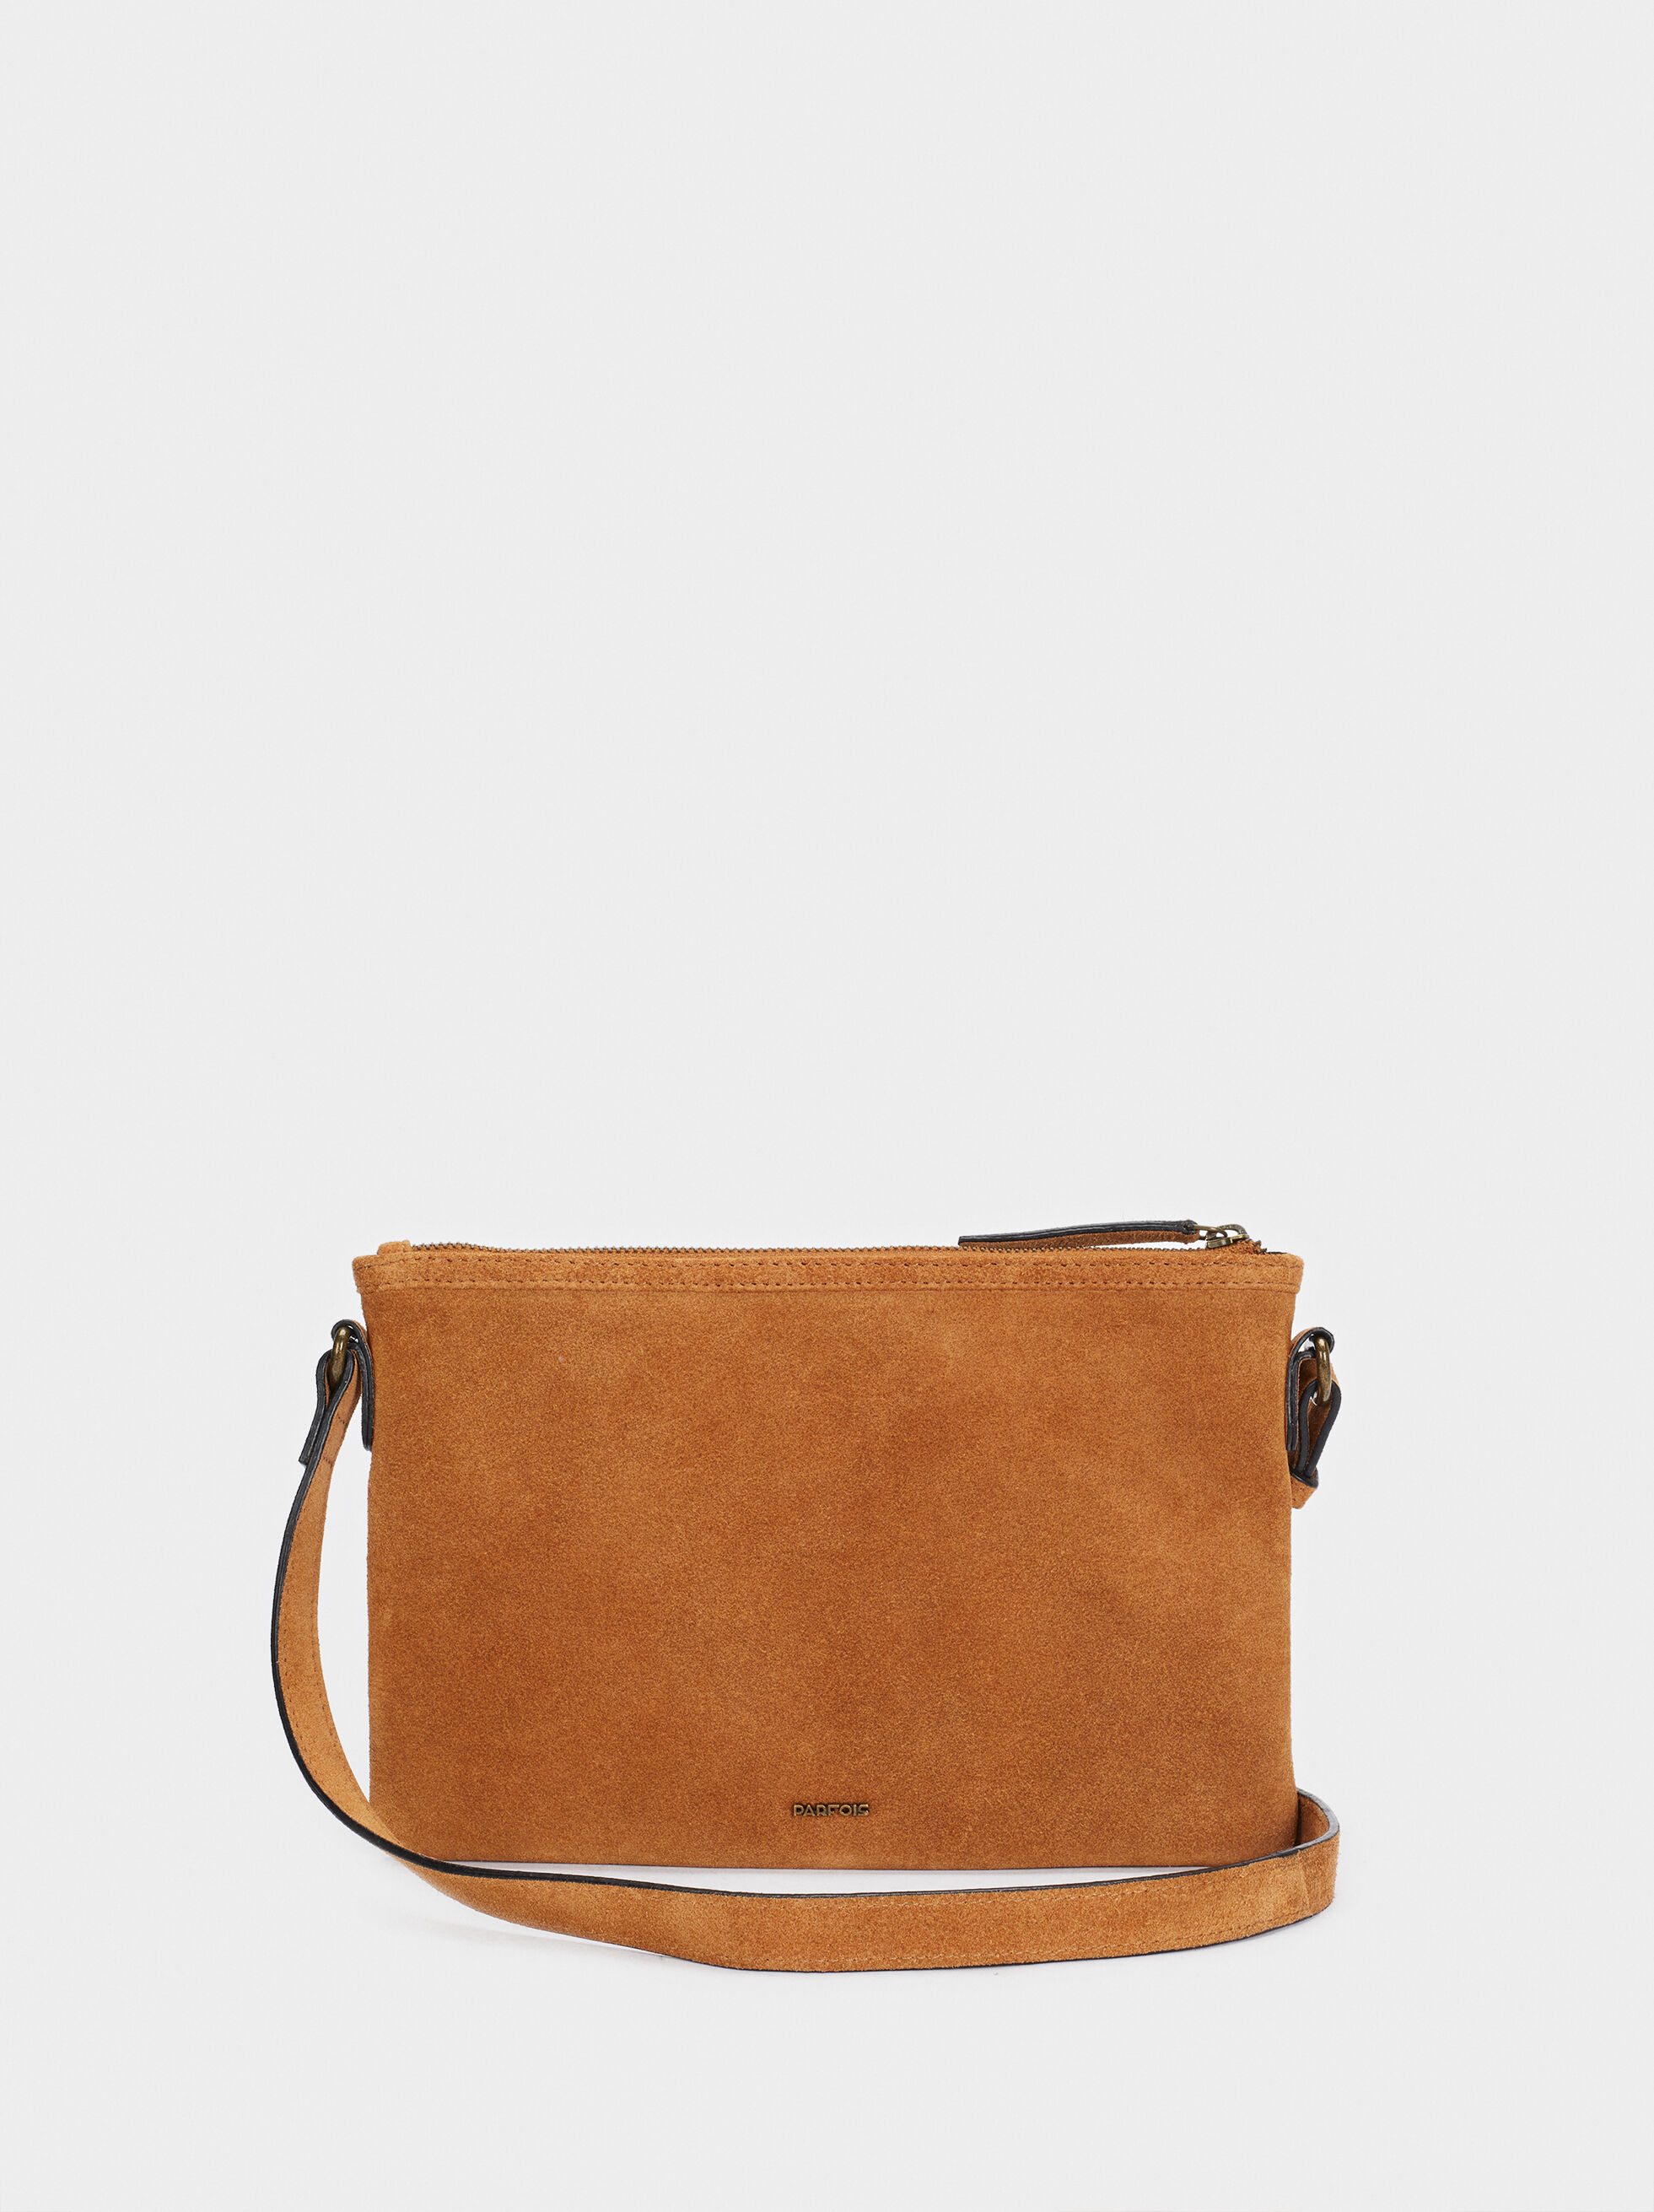 Textured Suede Crossbody Bag With Fringe, Camel, hi-res